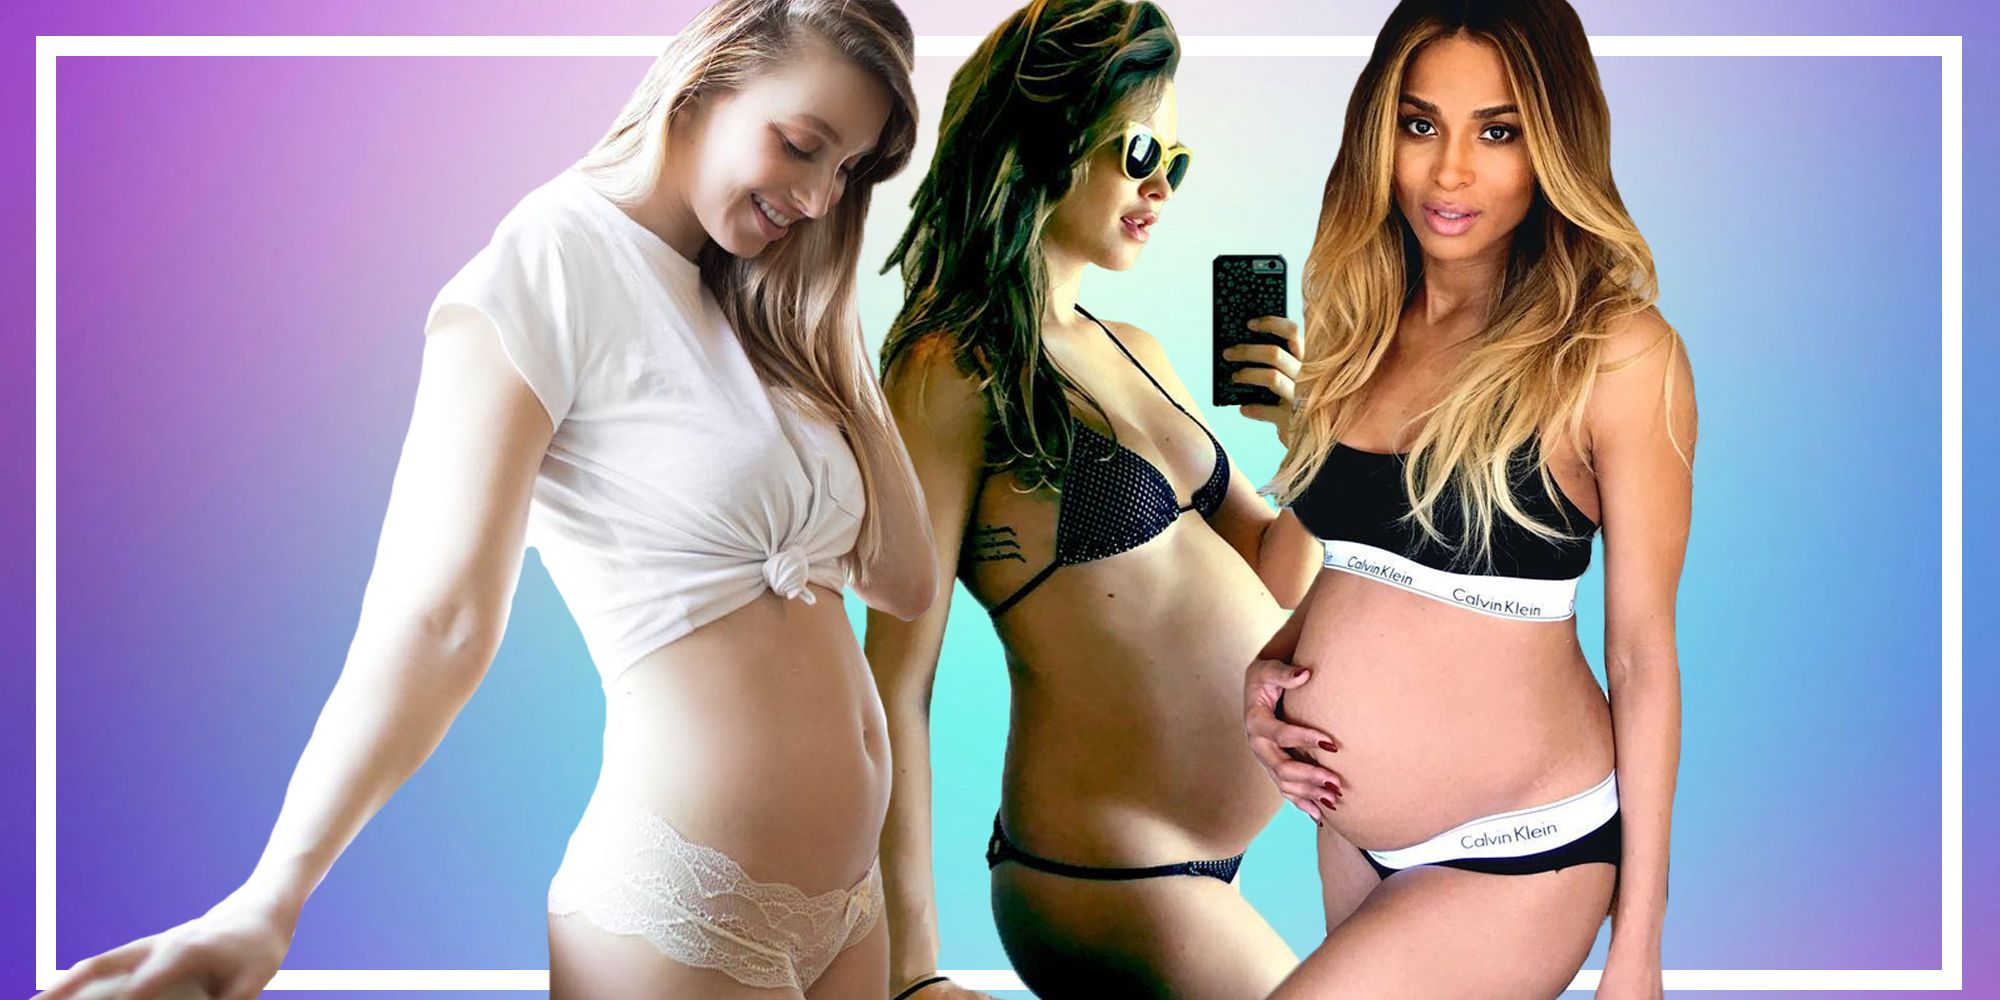 Two Women Show How Different Baby Bumps Can Look recommend